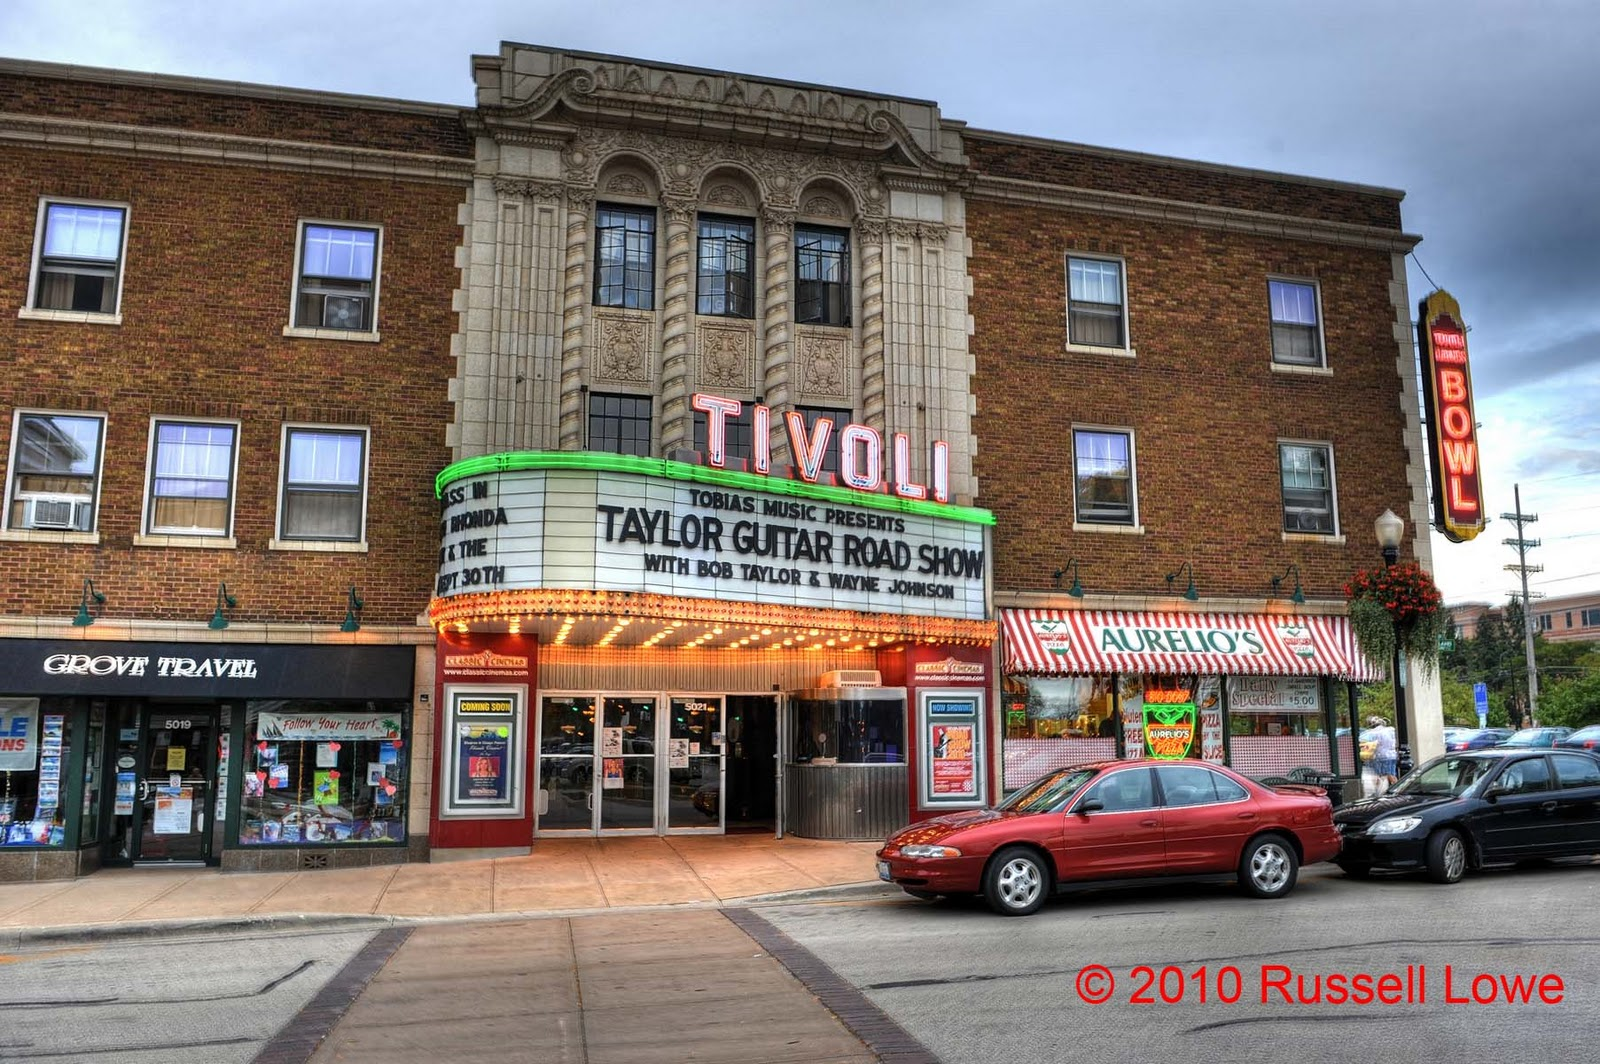 Tivoli Theatre In Downers Grove Il Quotthe Way I See It Quot Russ Lowe Taylor Guitars Roadshow